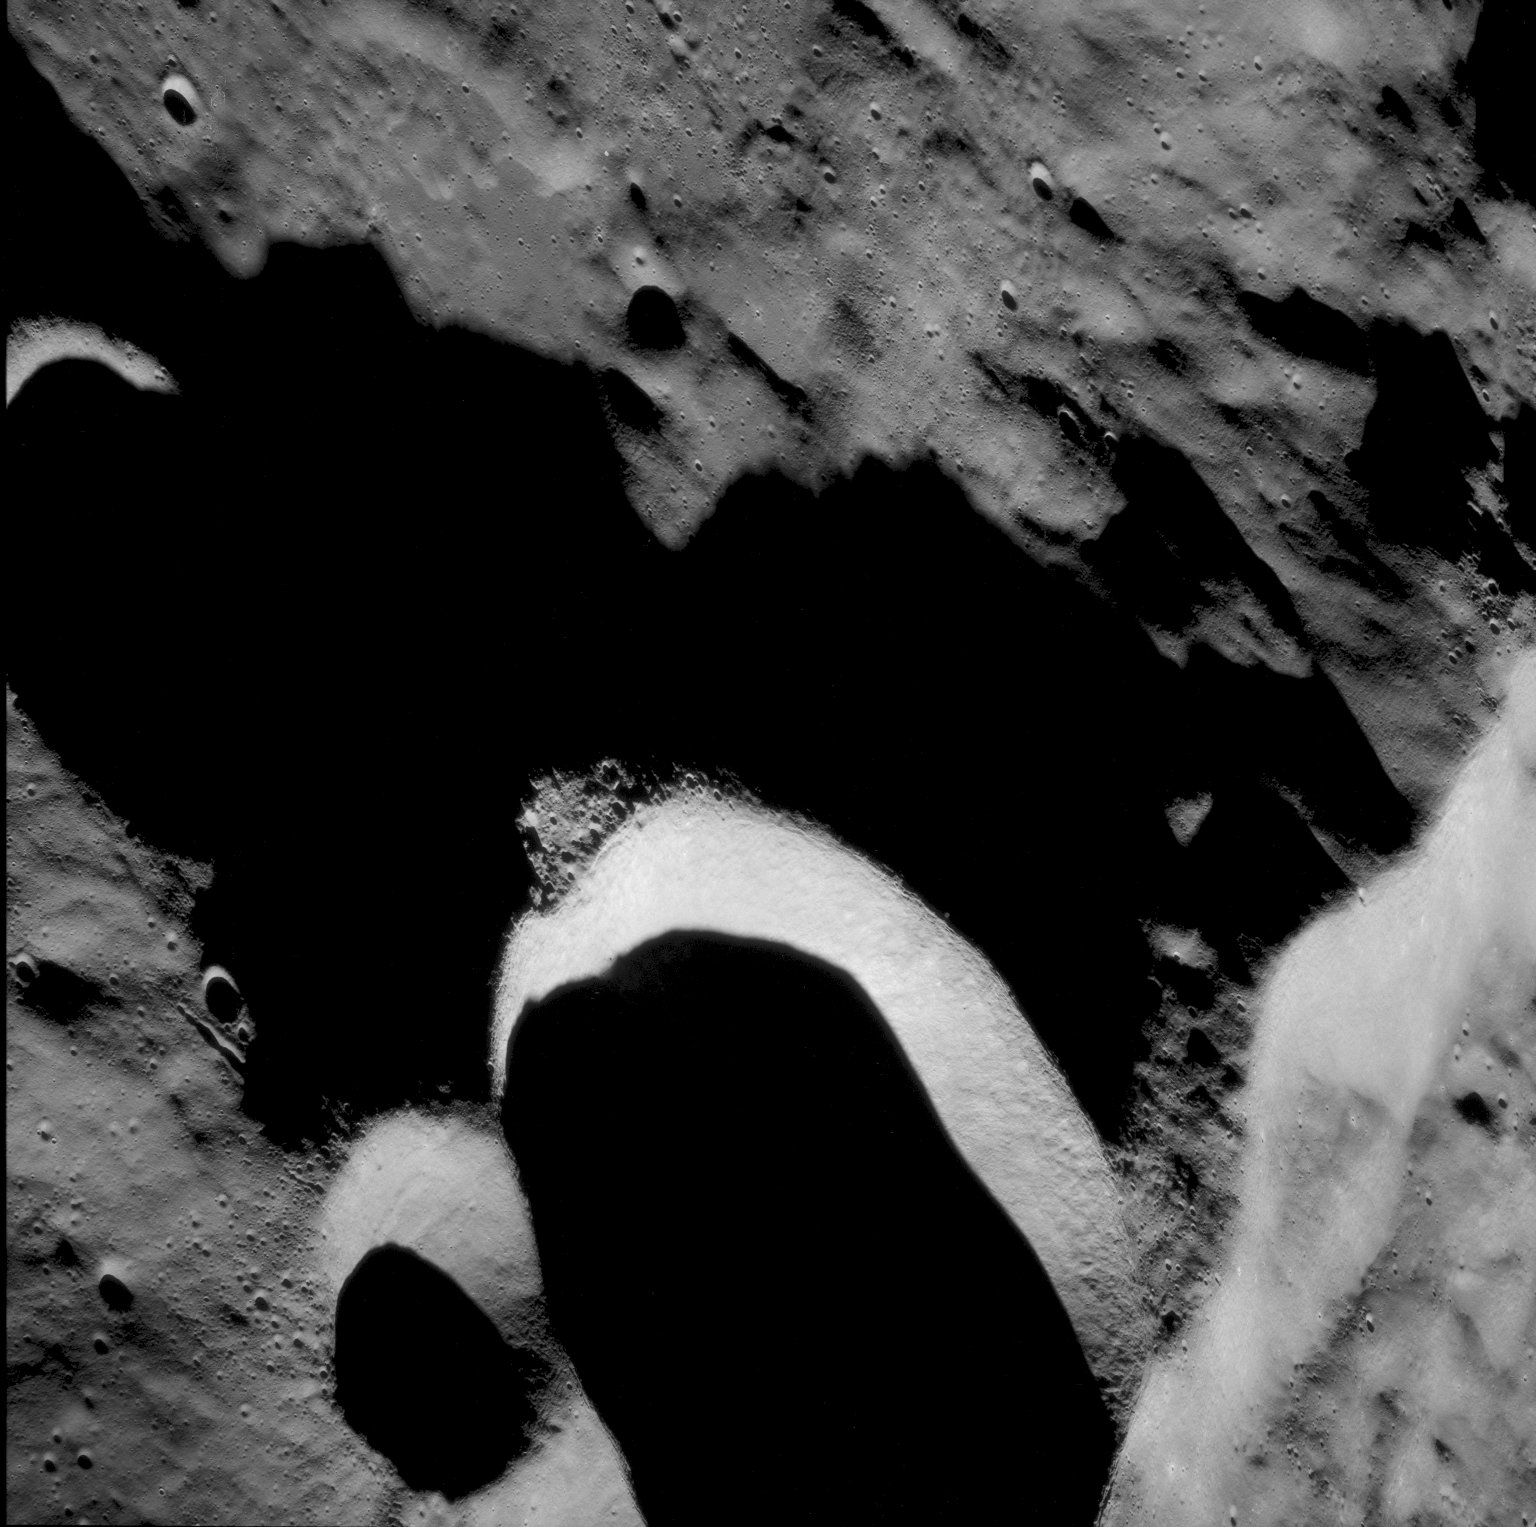 Apollo 11 Mission image - North of Crater 308